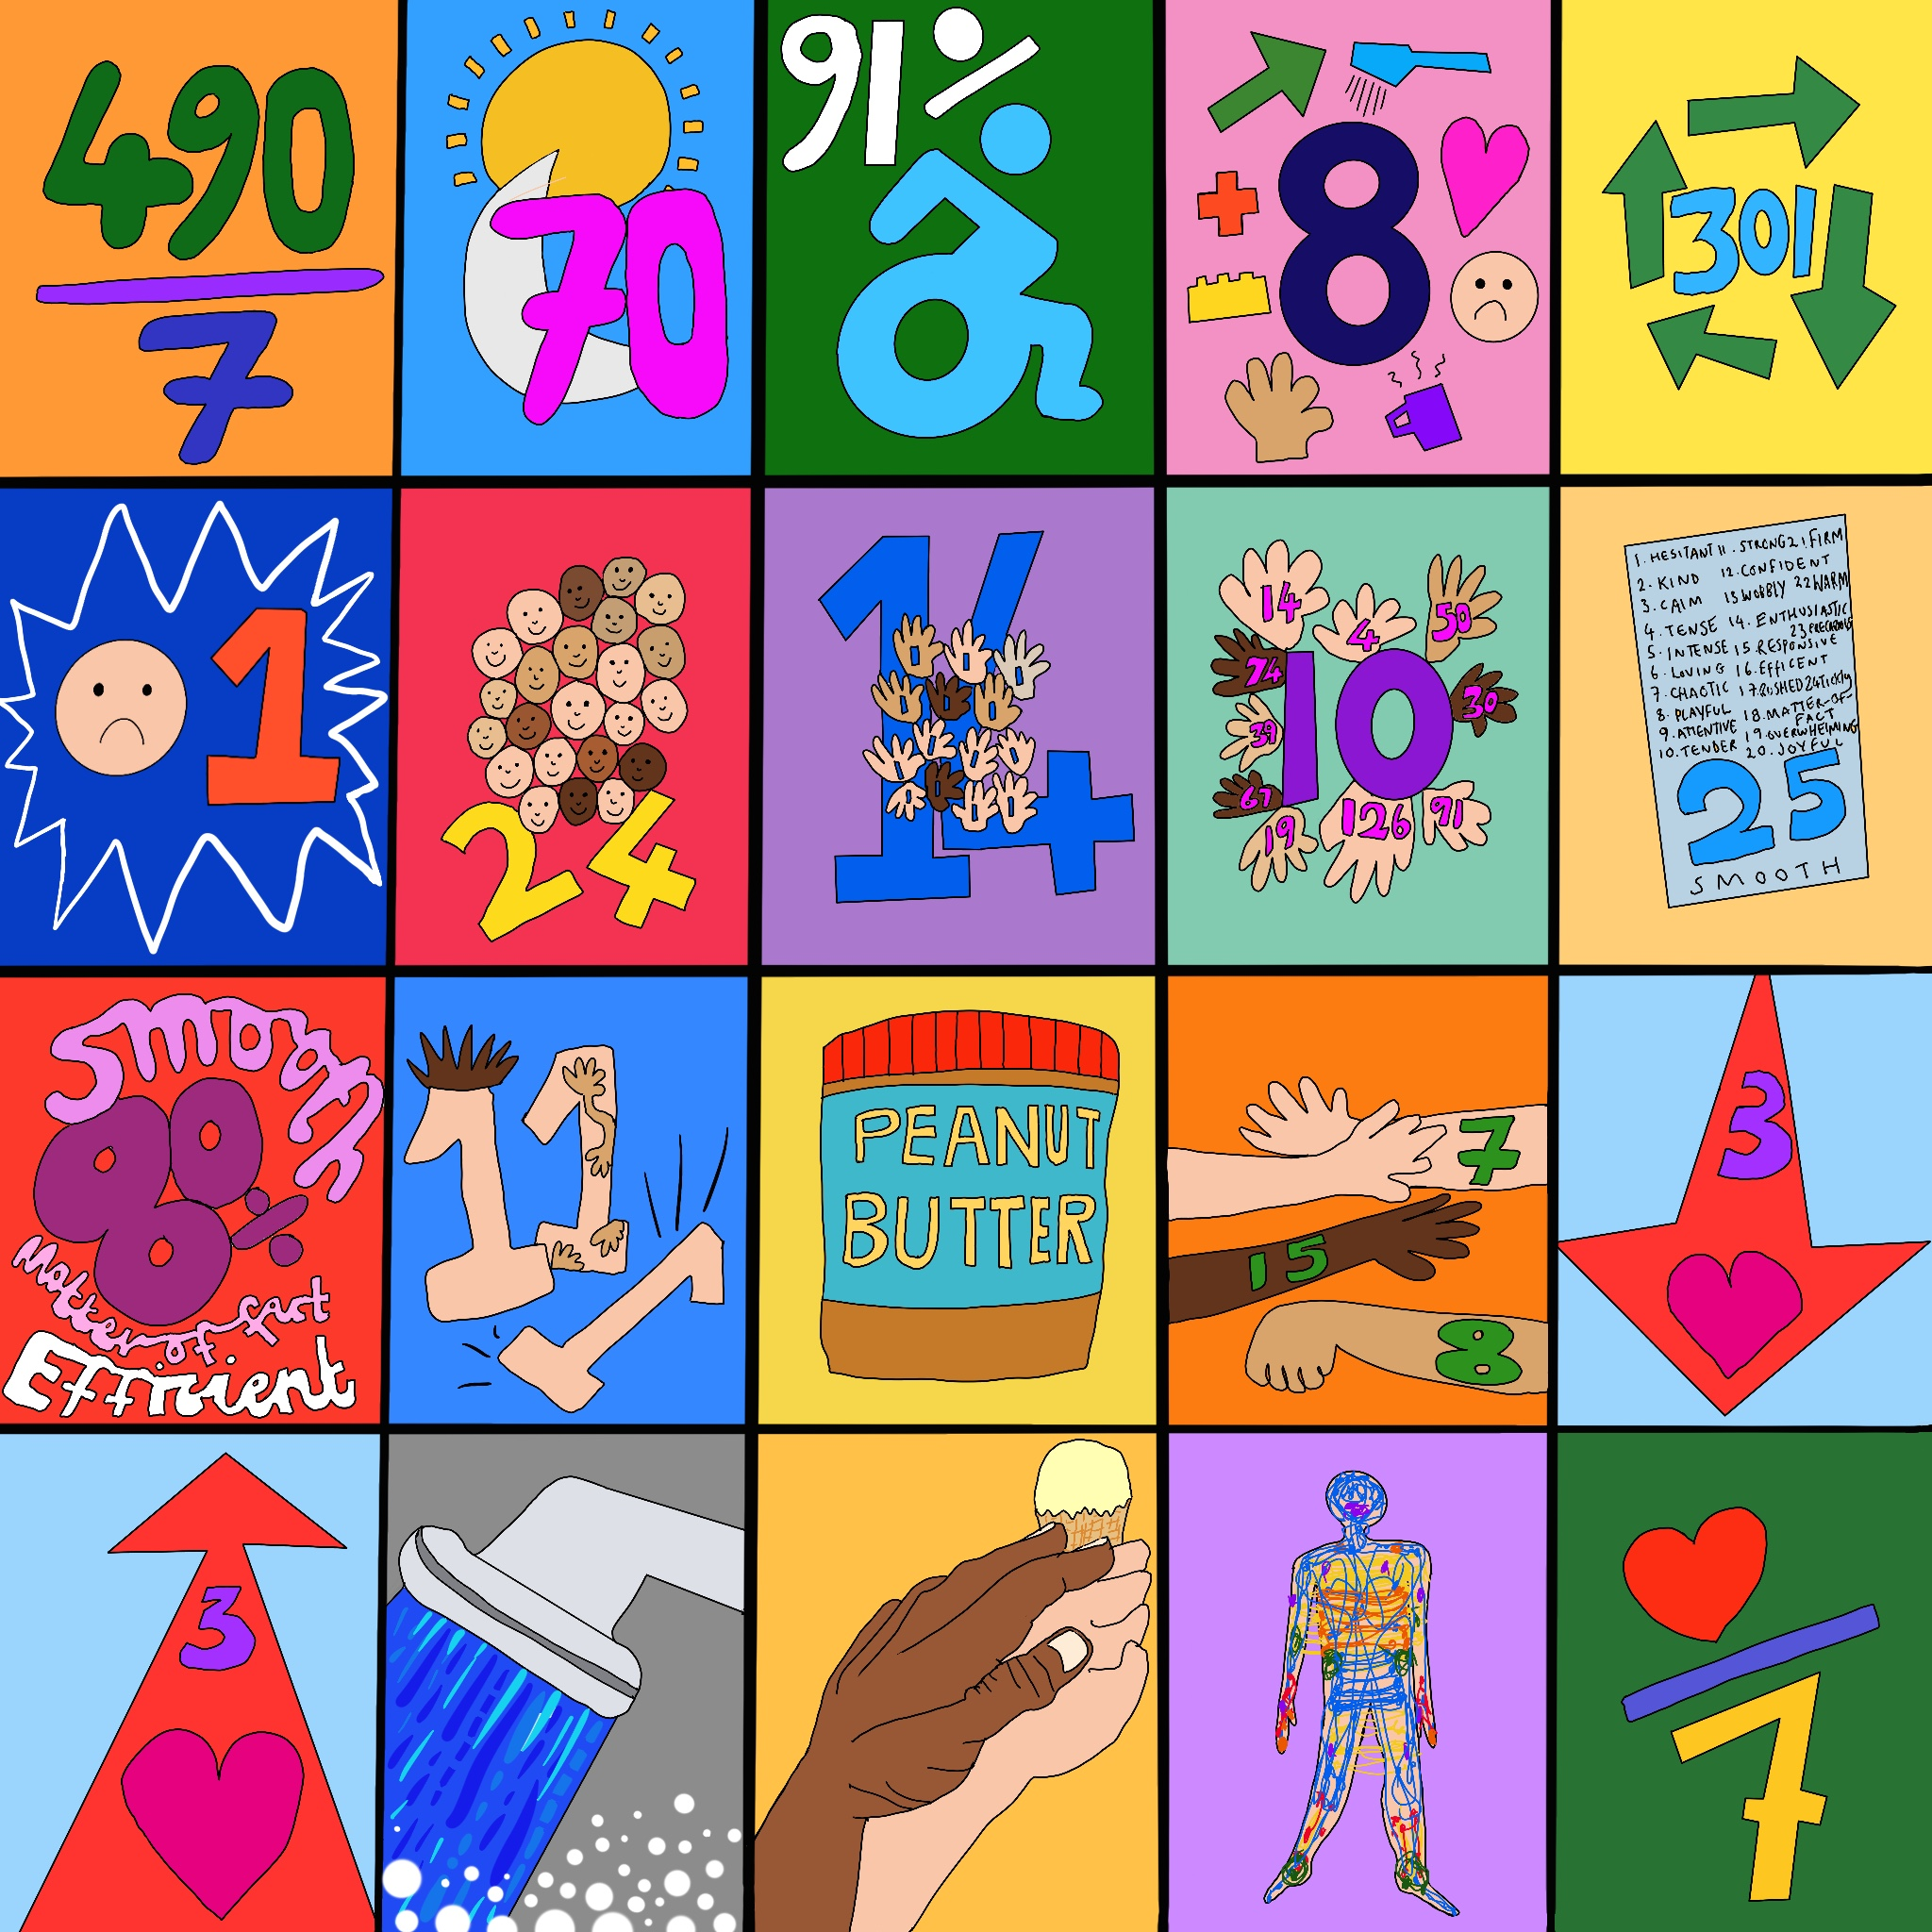 Illustration of a 5 by 4 grid with colourful squares and images depicting all of the stats below